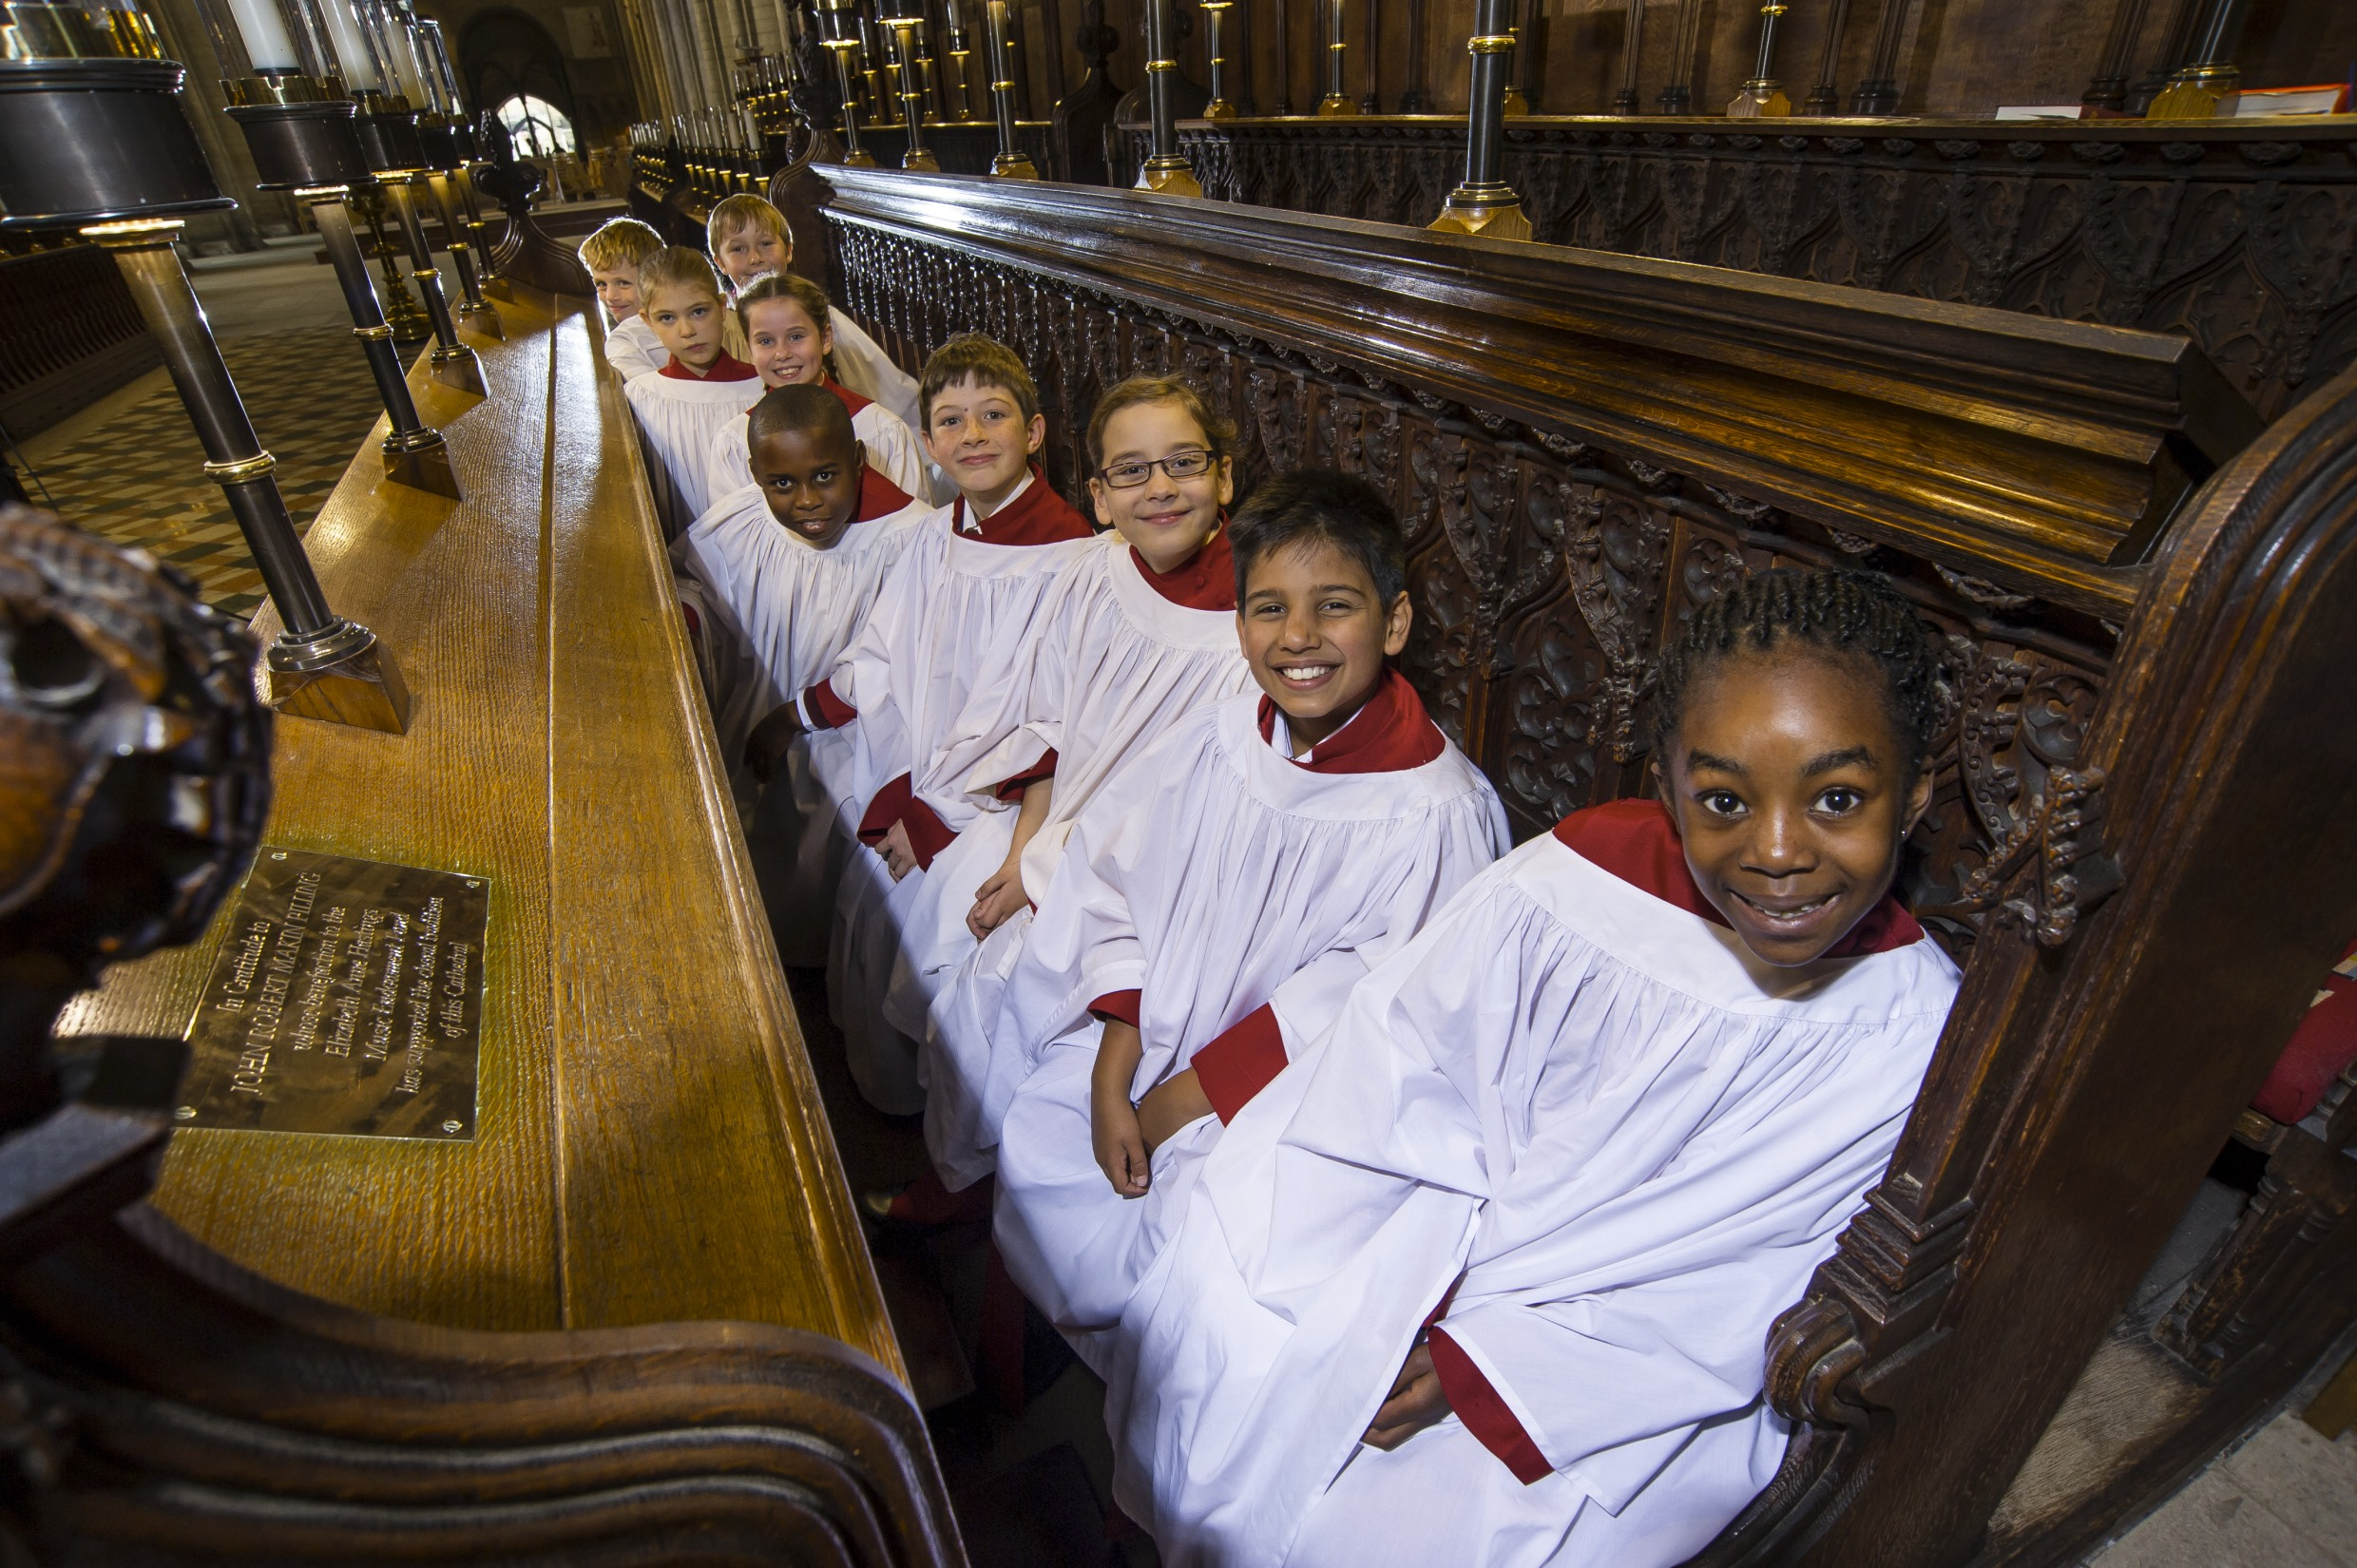 Choristers in the choir stalls